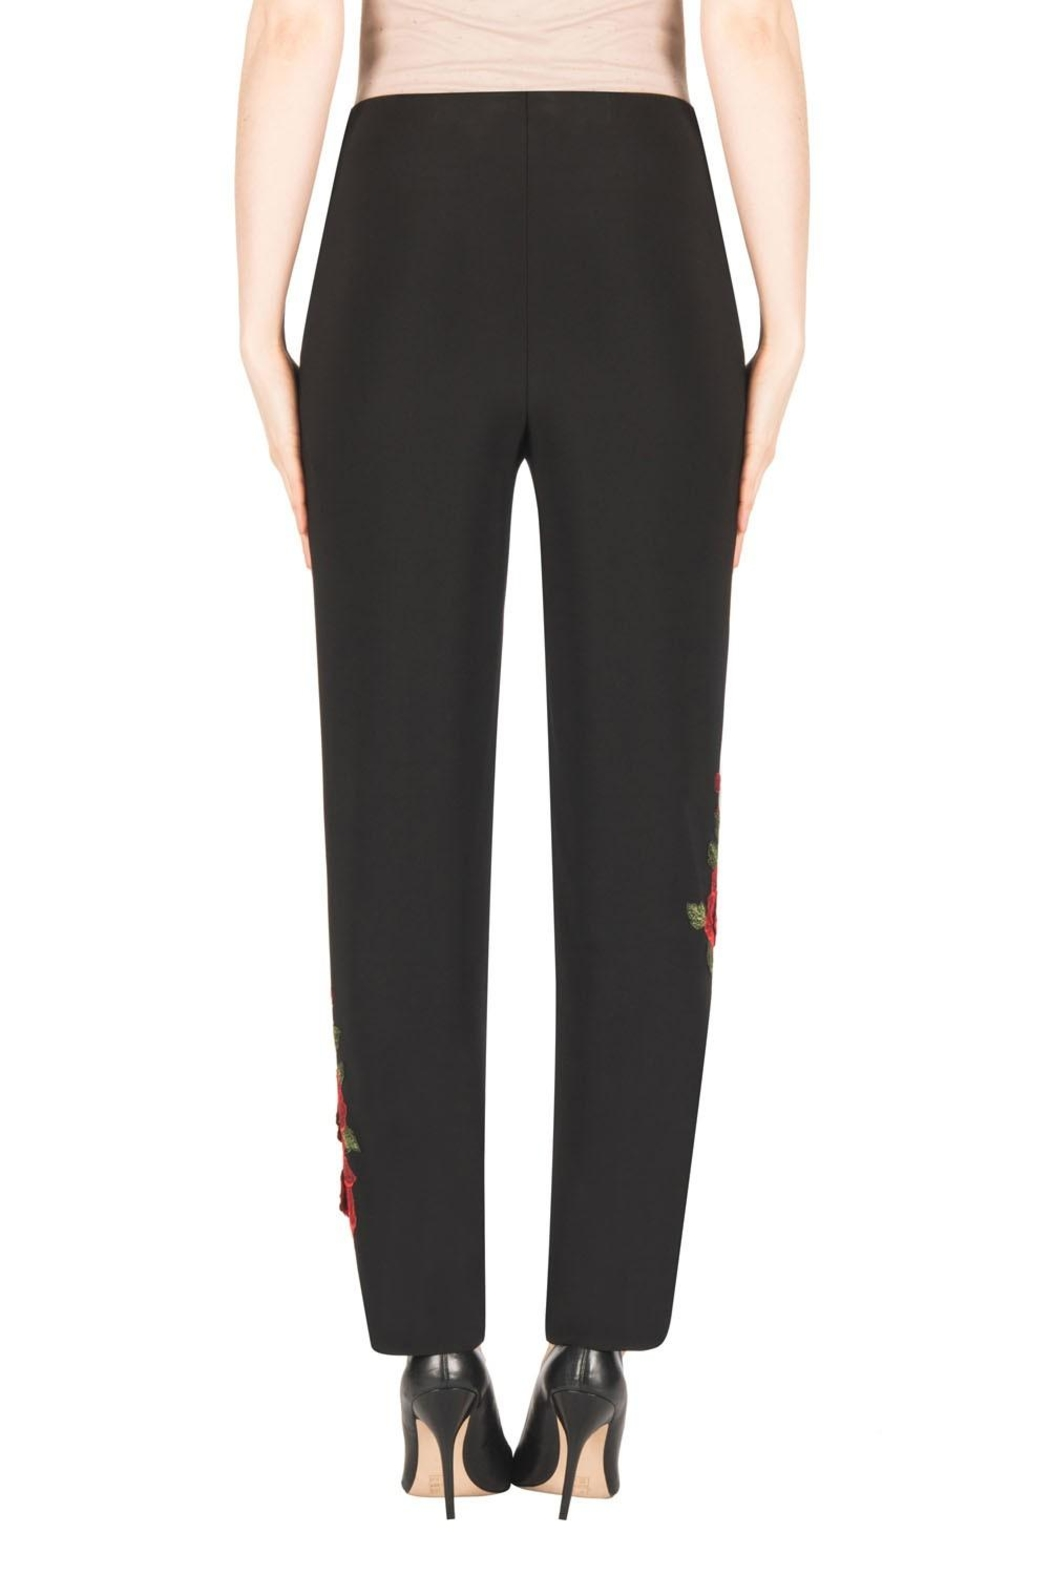 Joseph Ribkoff Floral Embroidered Pant - Side Cropped Image